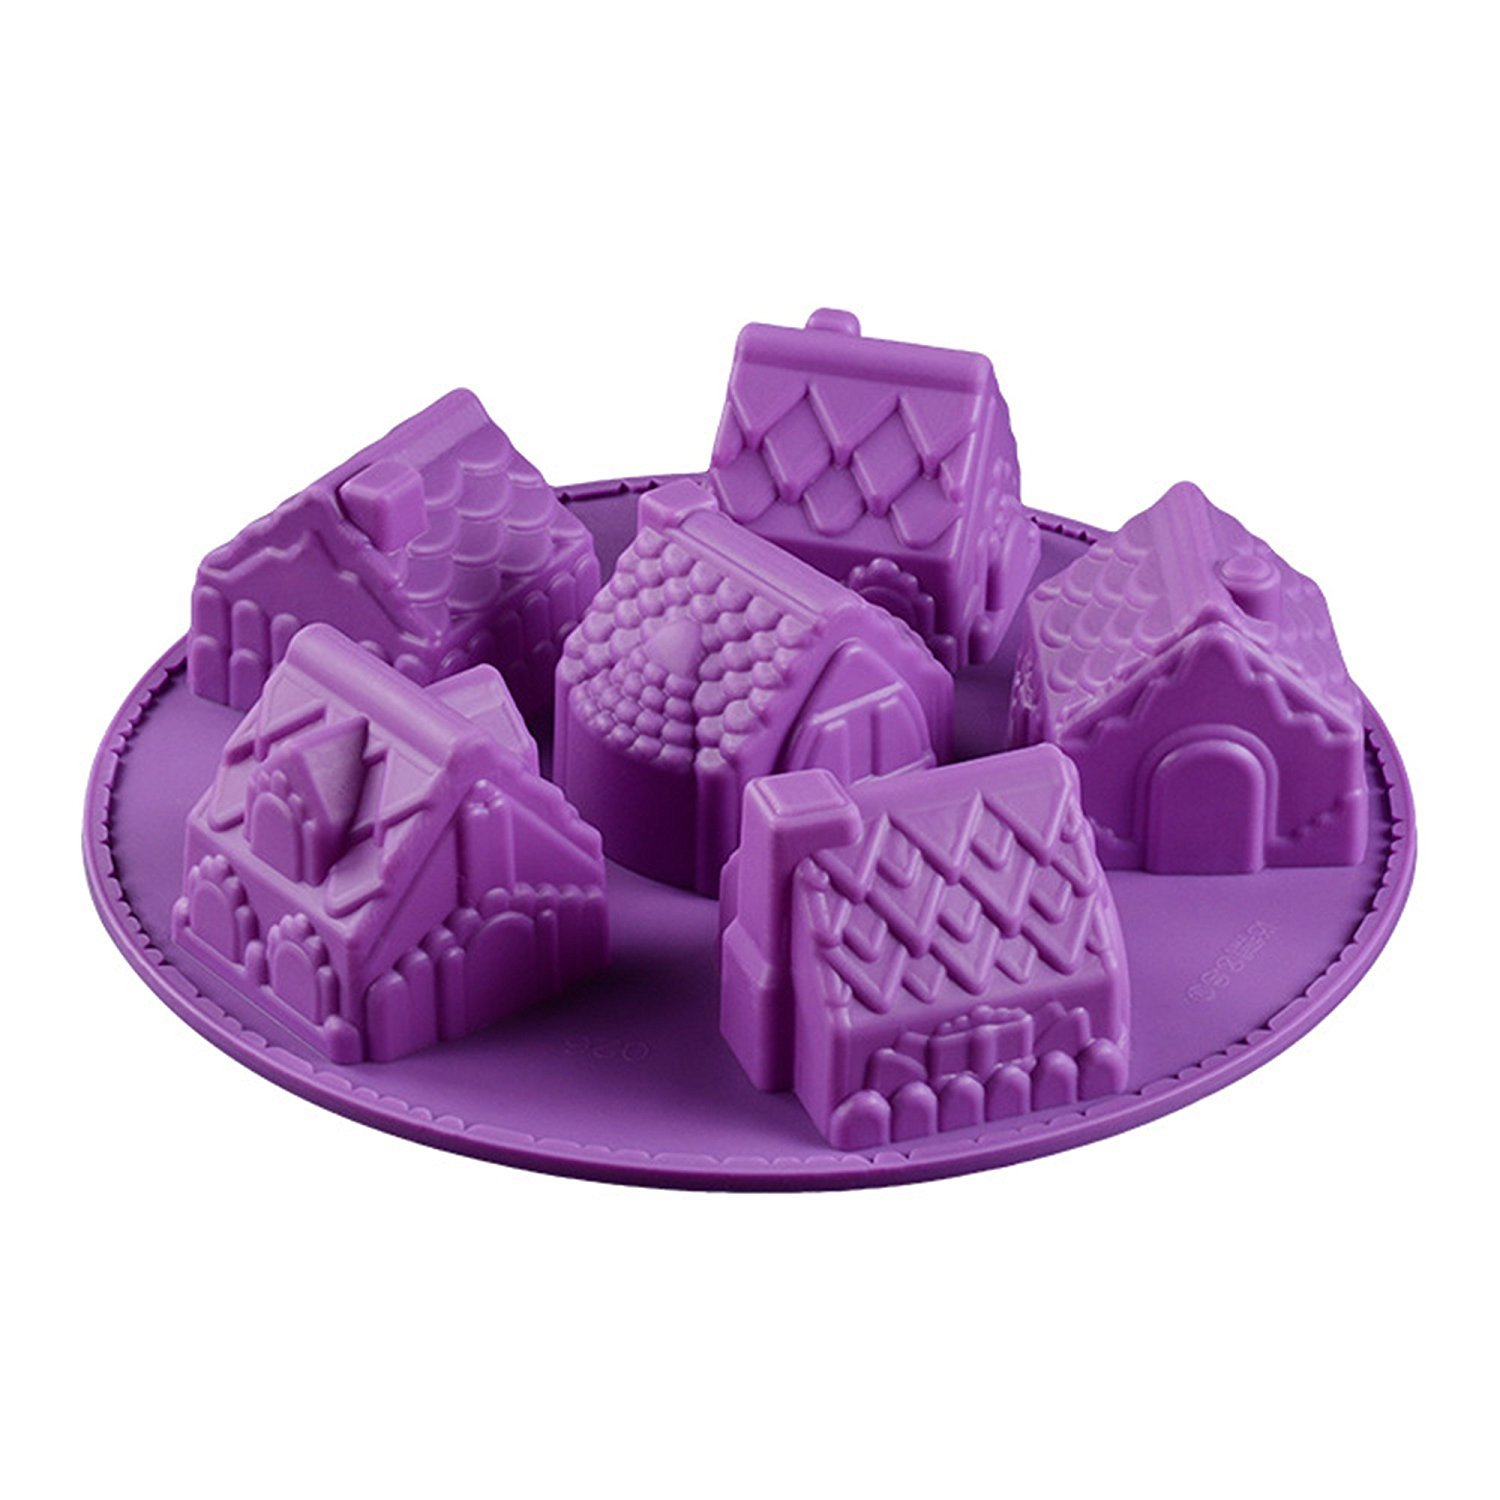 Gydthdeix 1 Pcs 6 Cavity House Jelly Christmas Biscuits Soap Silicone Chocolate Candy Cake Ice Cube Muffin Pan Baking Making Mould Mold Set by Gydthdeix